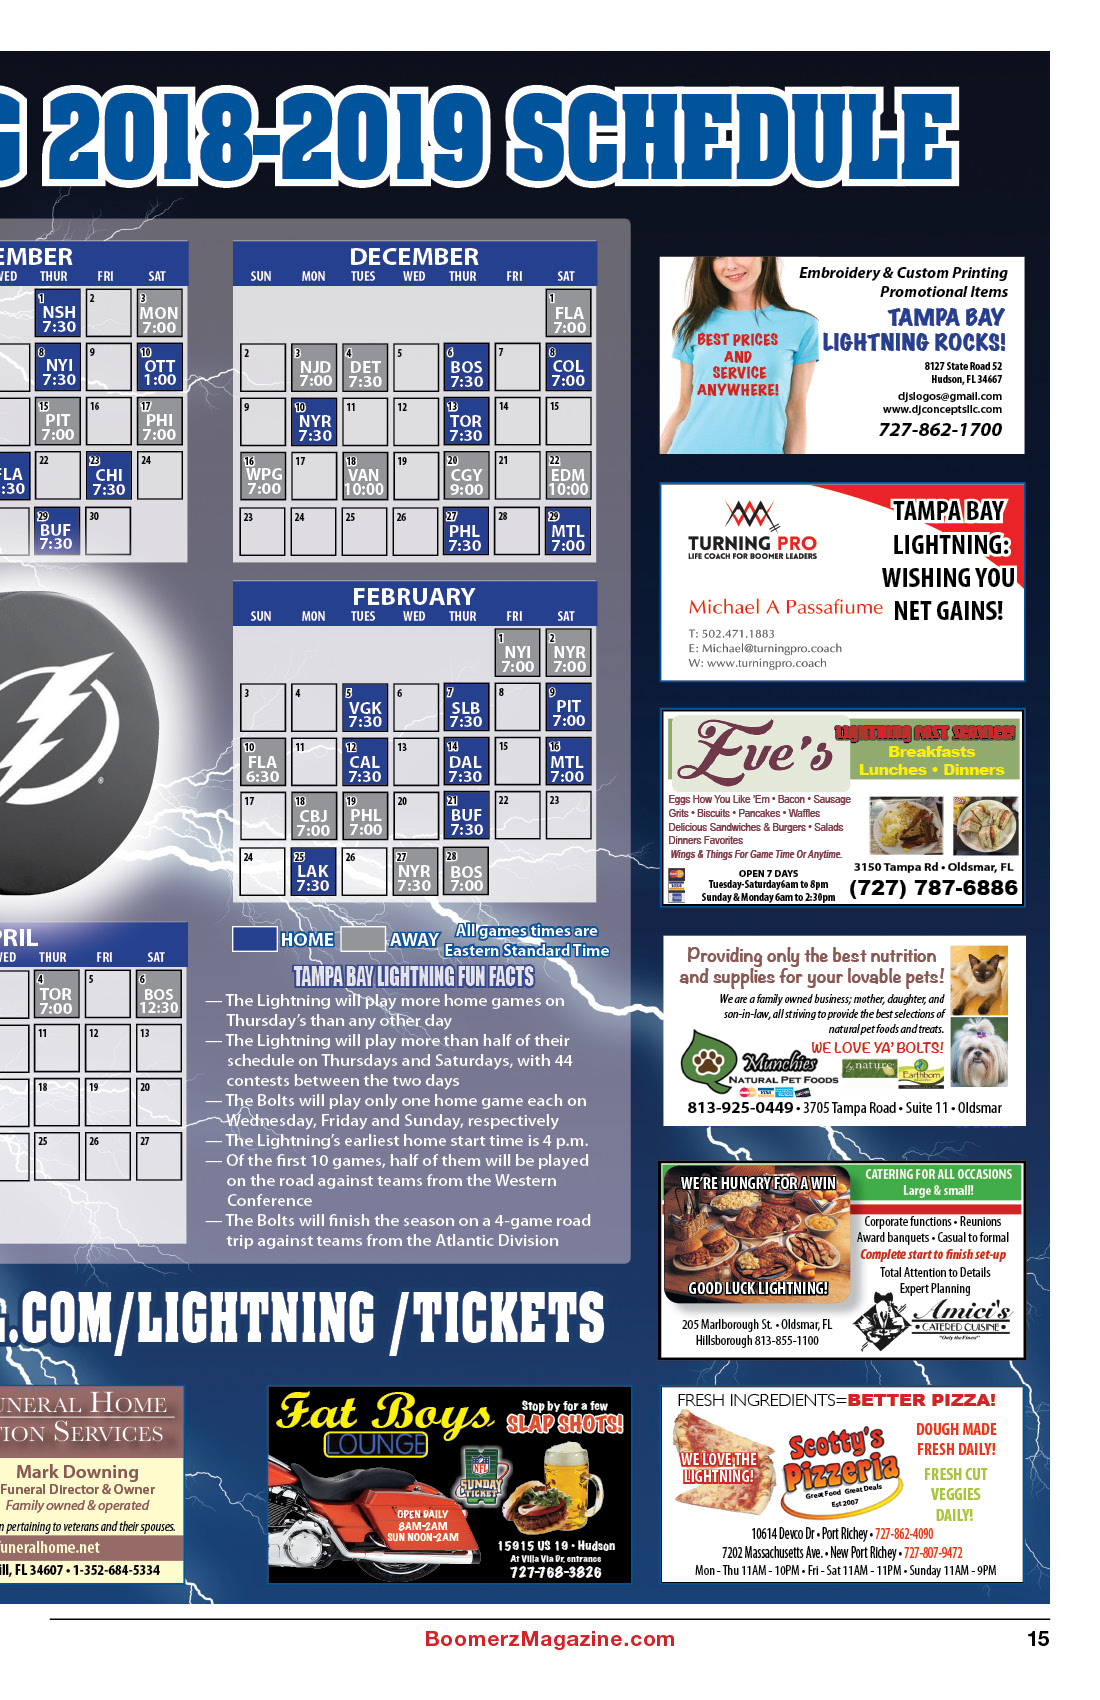 2018 October Boomerz Magazine Page 15 Tampa Bay Lighting Schedule